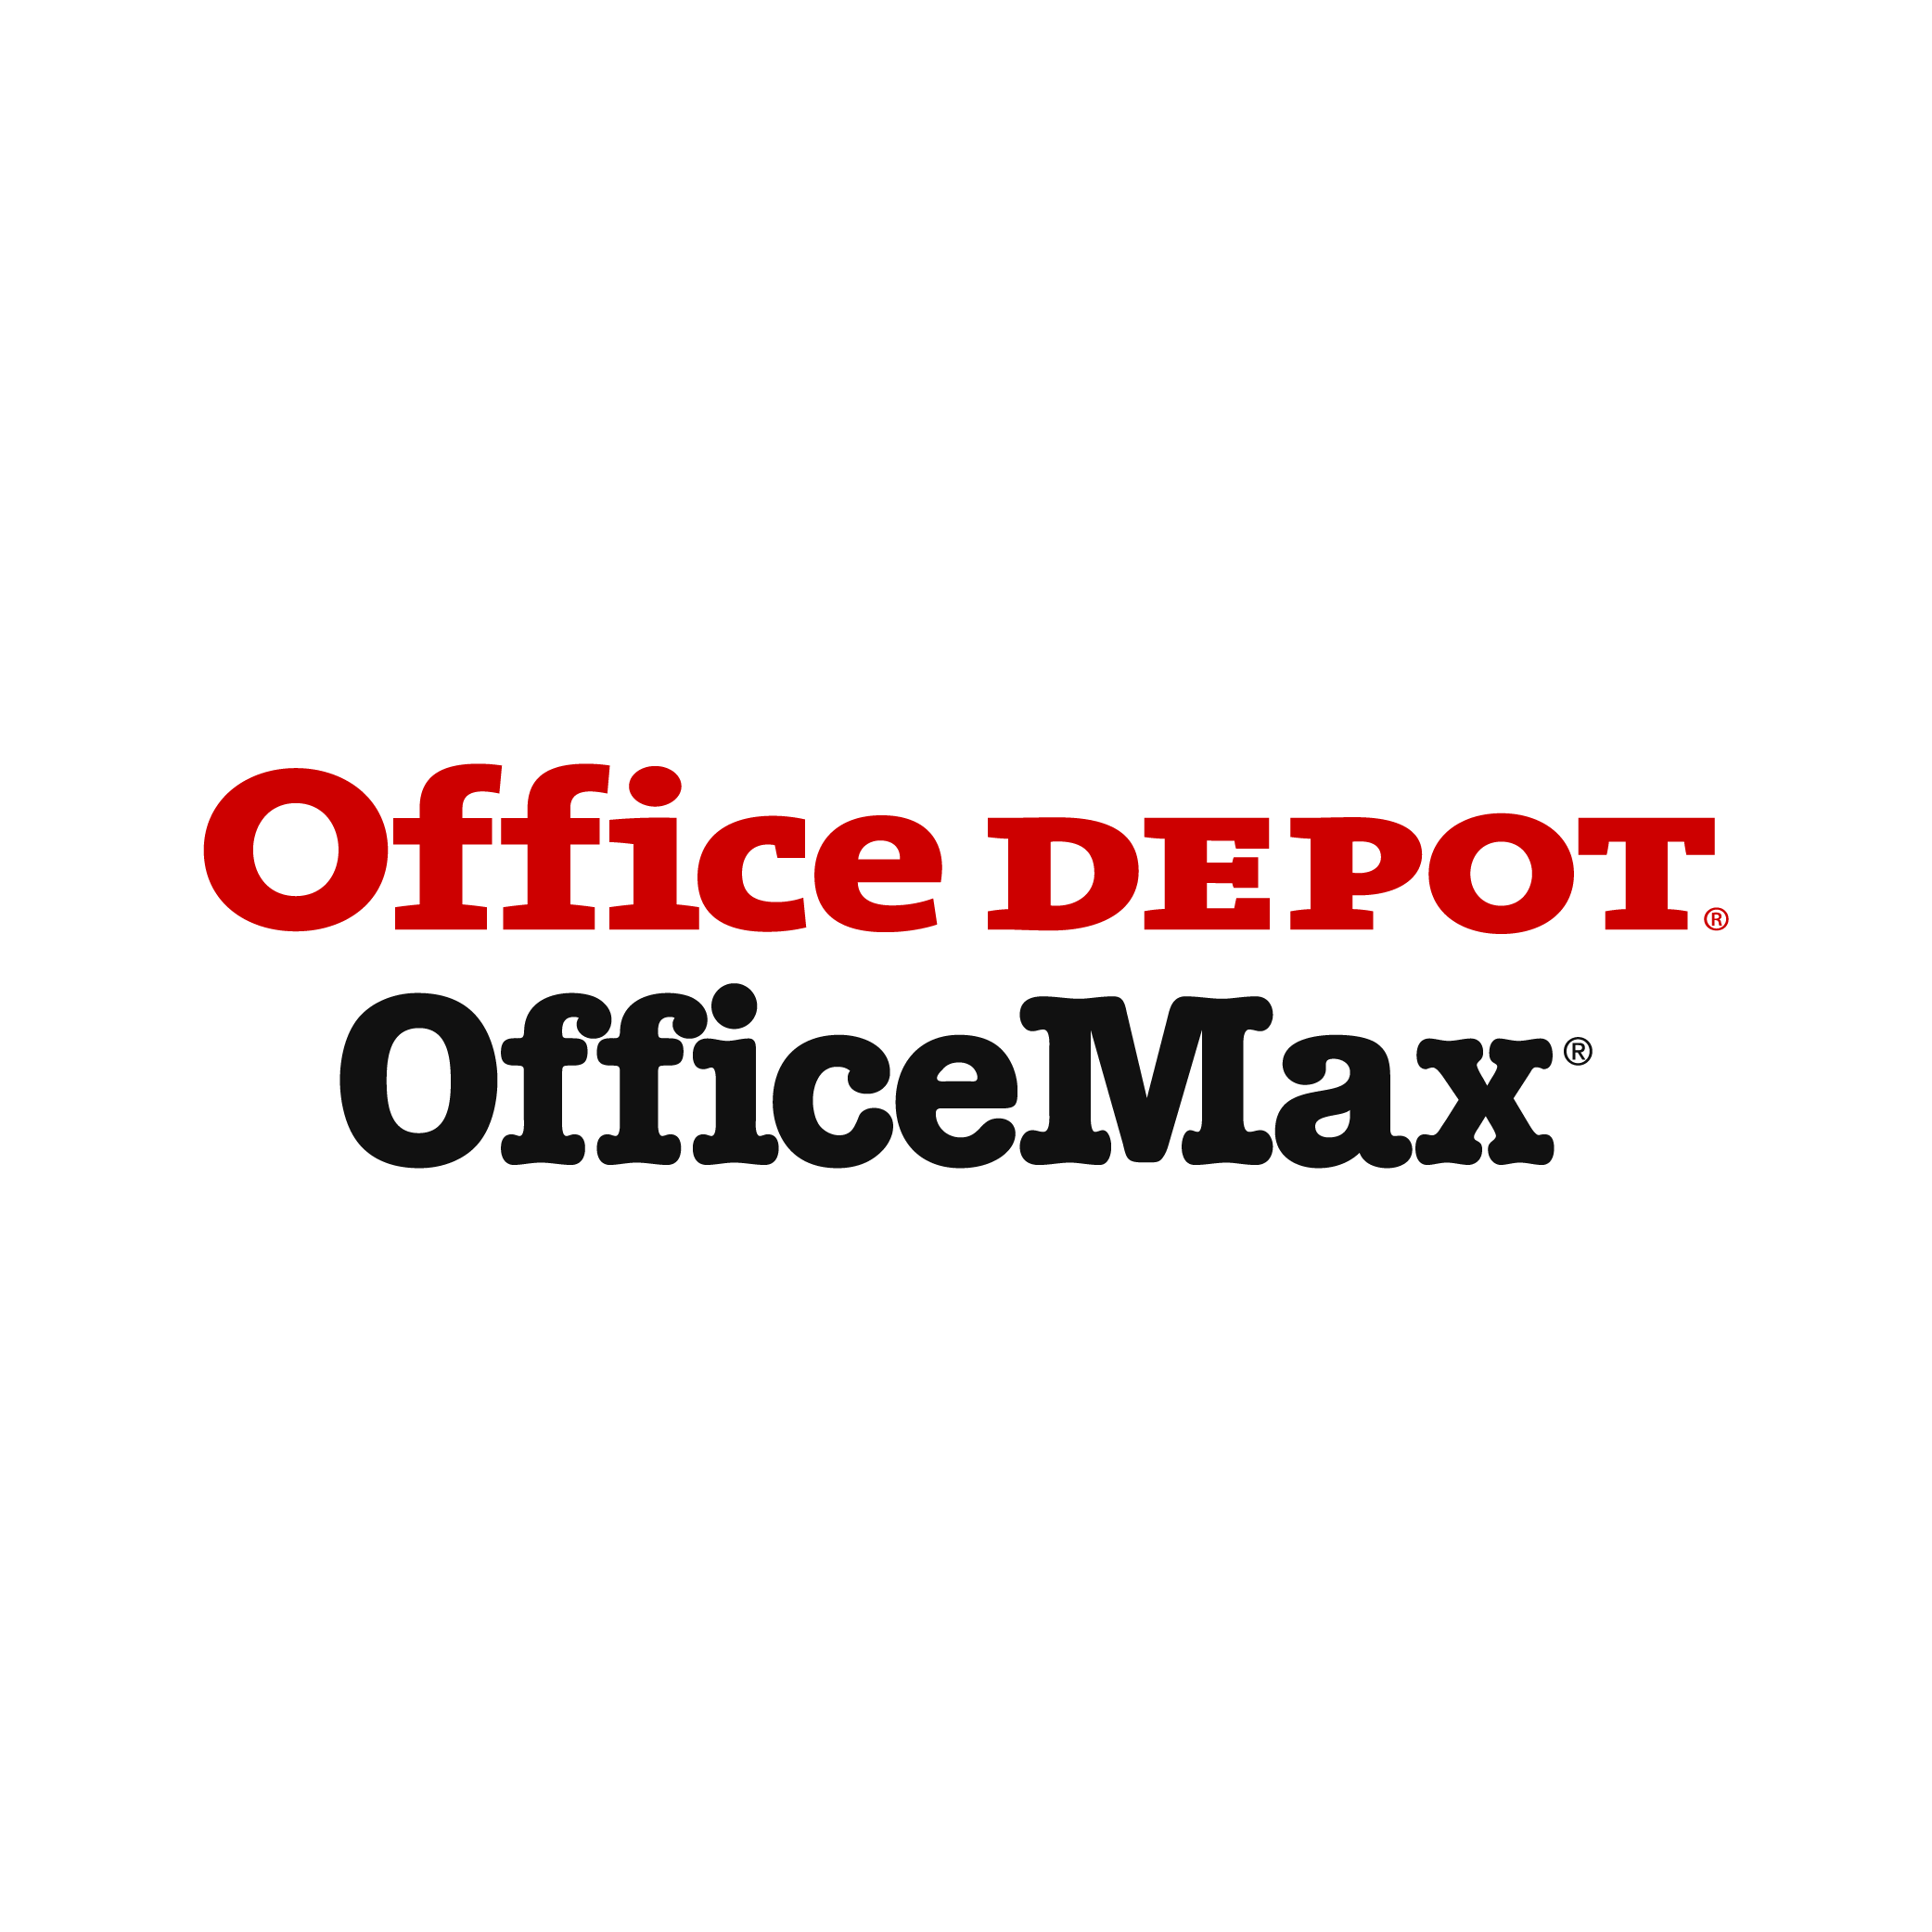 Office Depot image 3